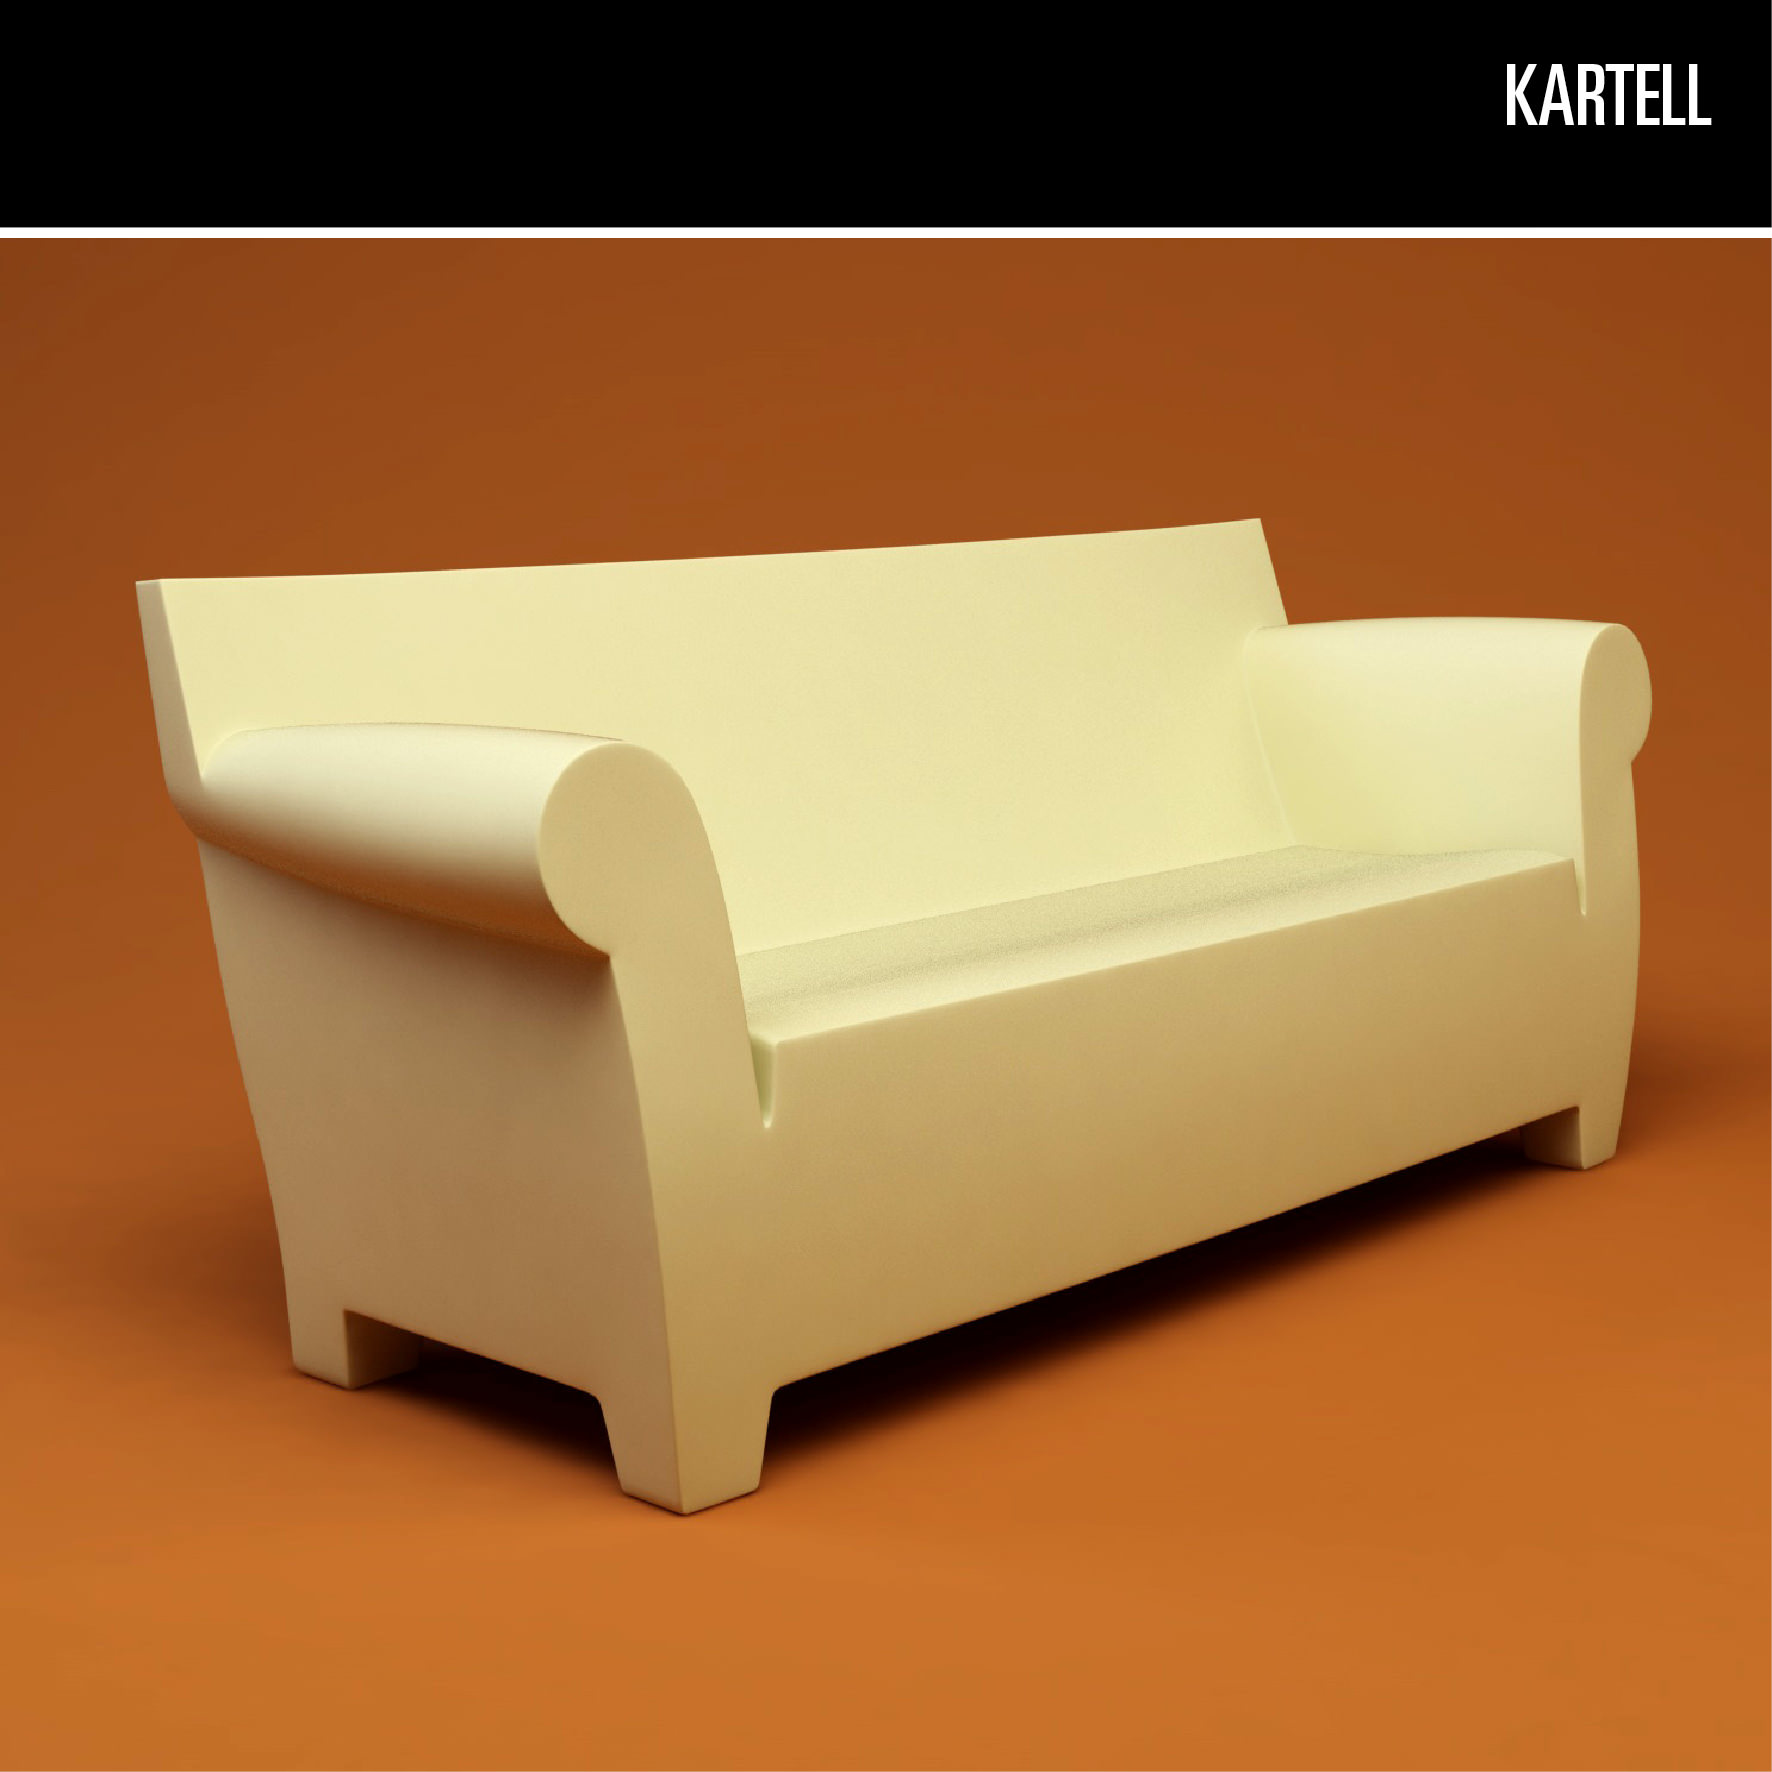 Starck Furniture Collection 18 Objects 3d Model